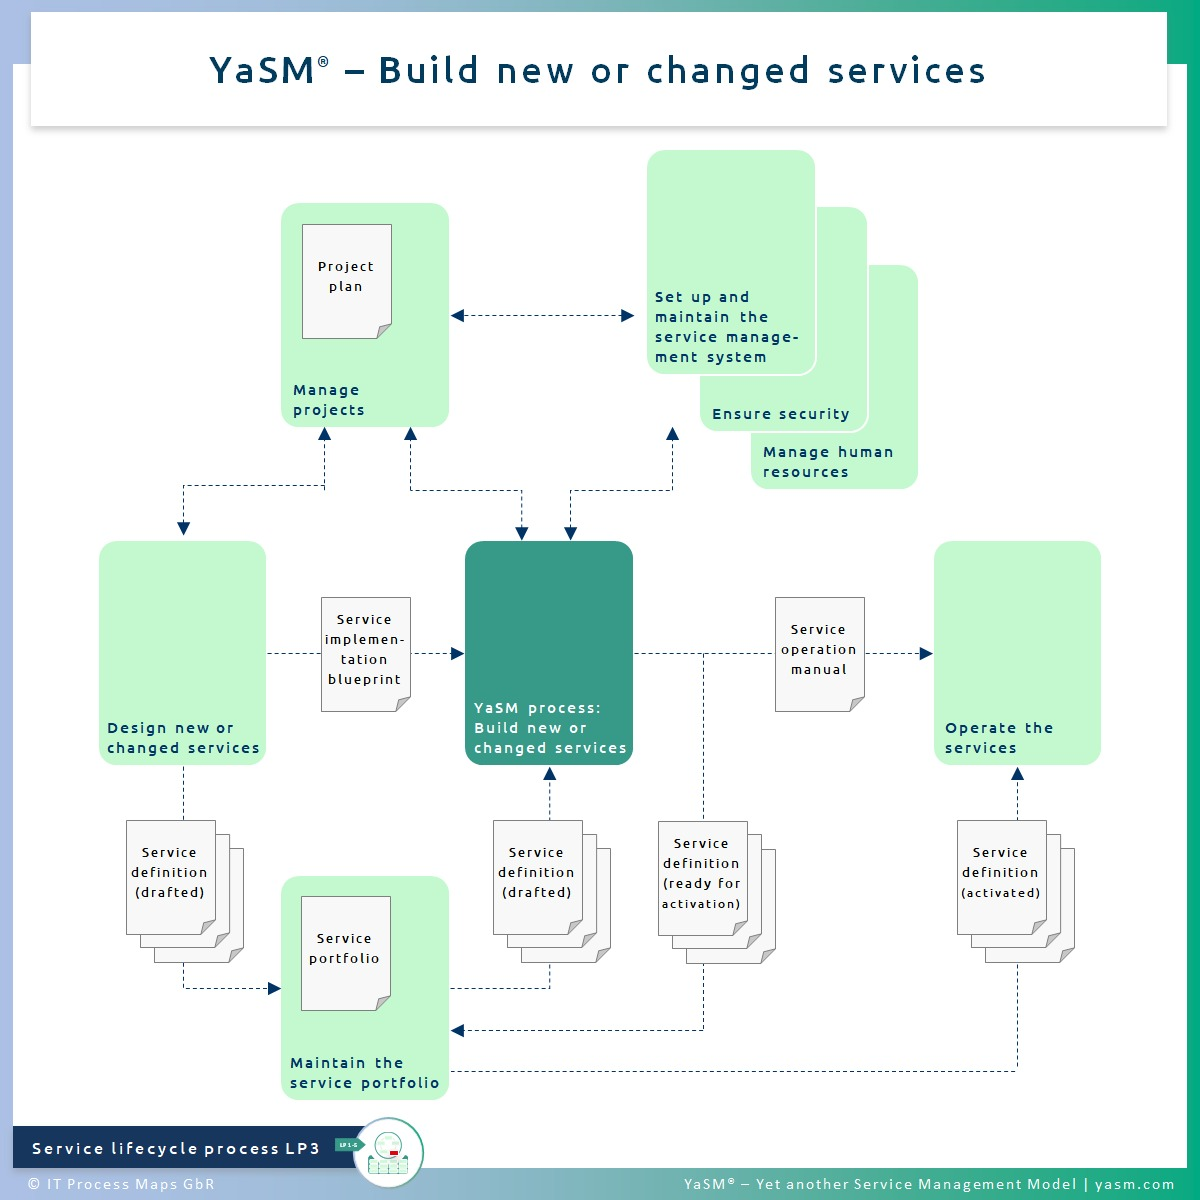 Fig. 1: Build new or changed services. - YaSM service build process LP3.